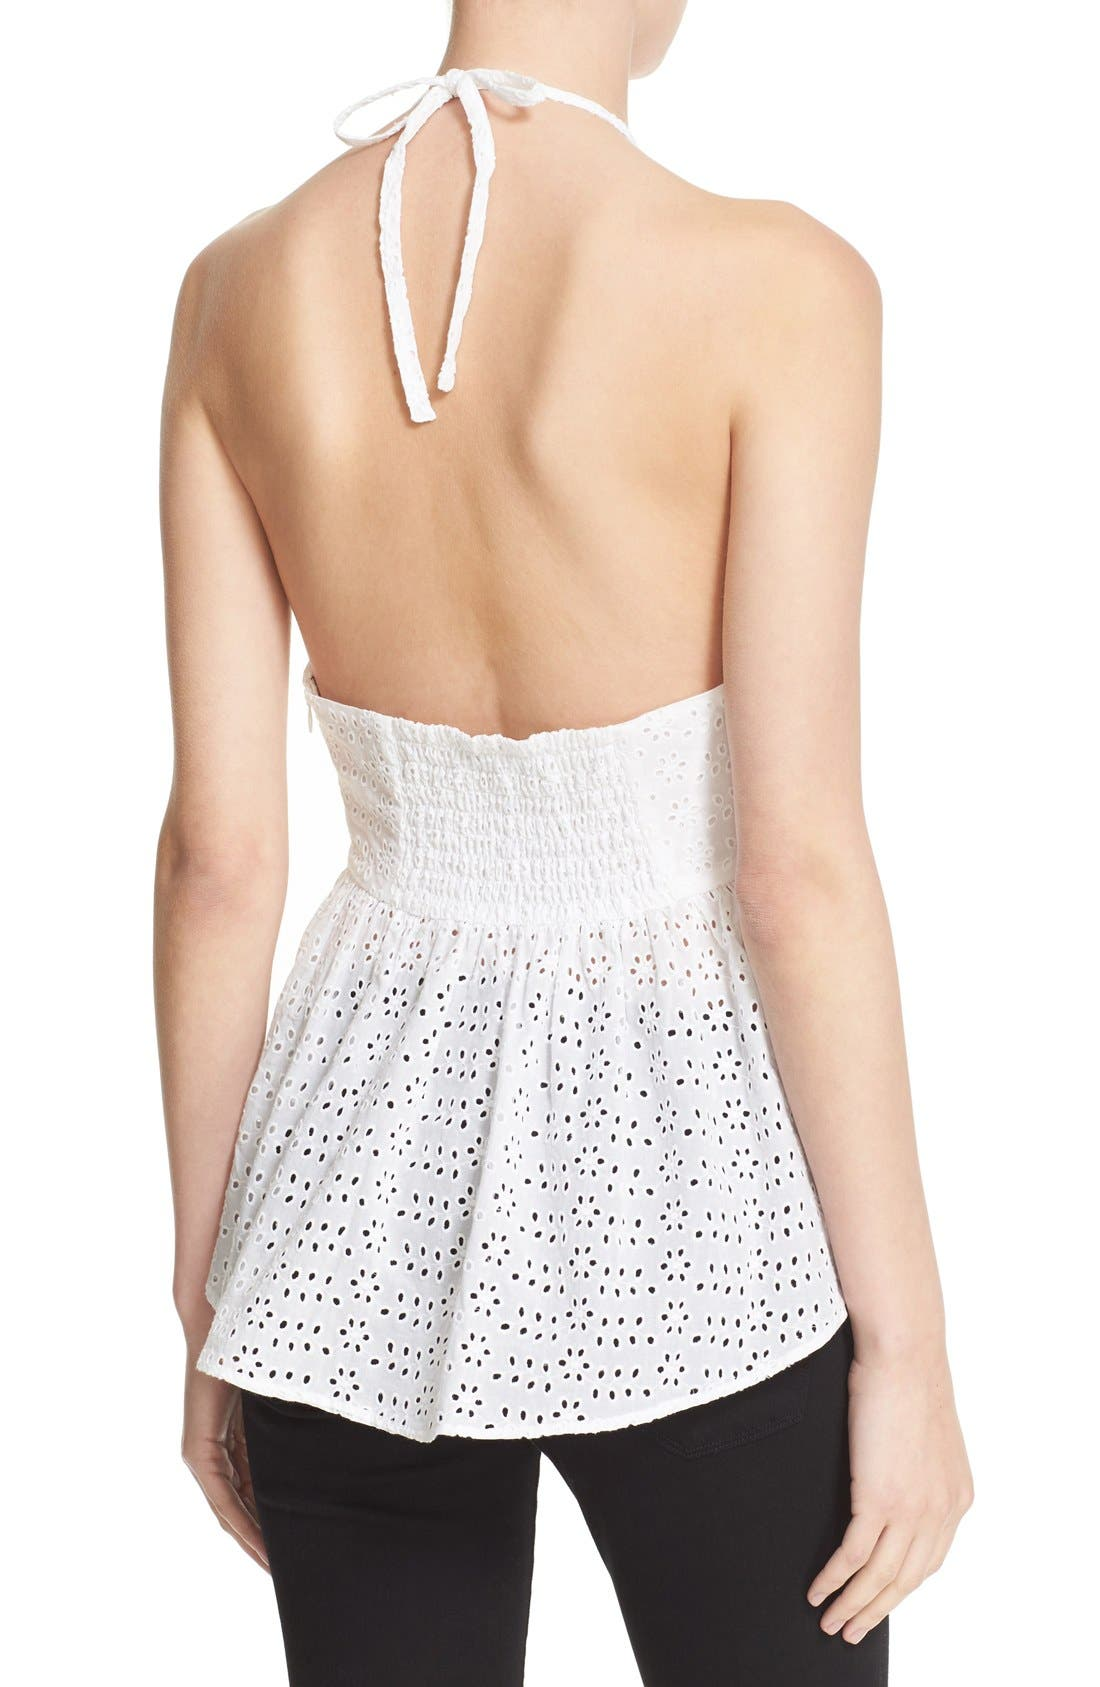 ELIZABETH AND JAMES, 'Perth' Eyelet Peplum Halter Top, Alternate thumbnail 2, color, 100